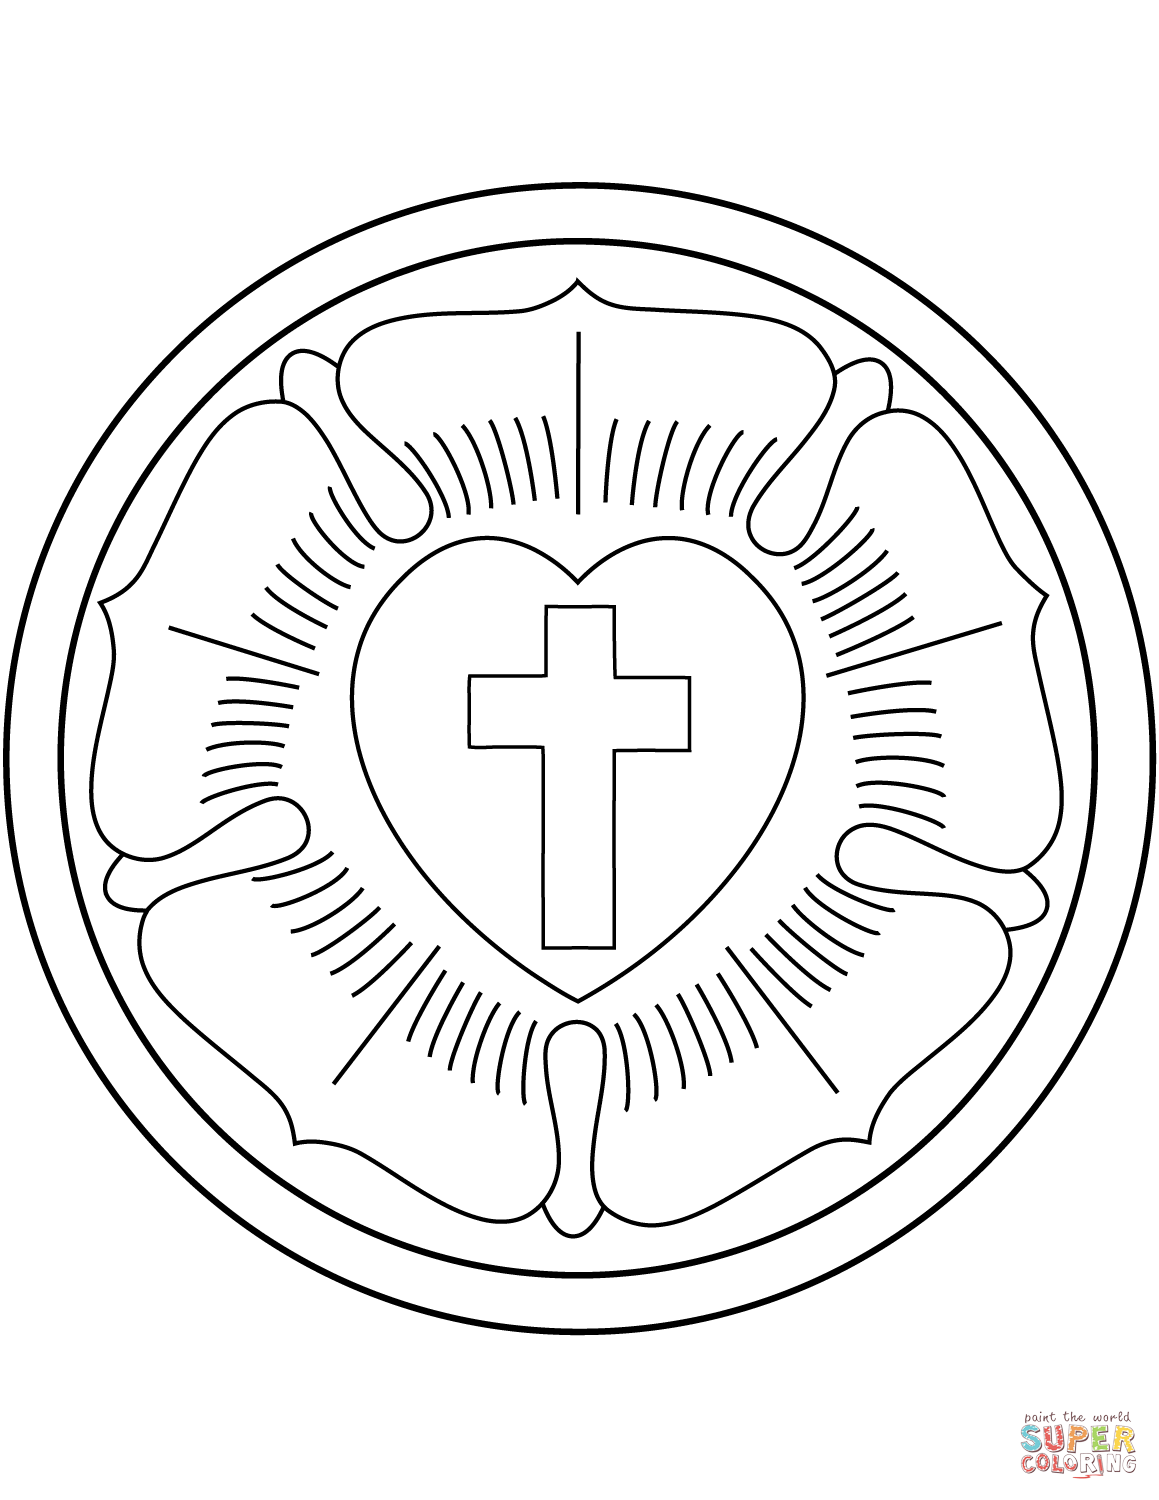 luther rose coloring page download a free copy of the martin luther roseseal along coloring page rose luther